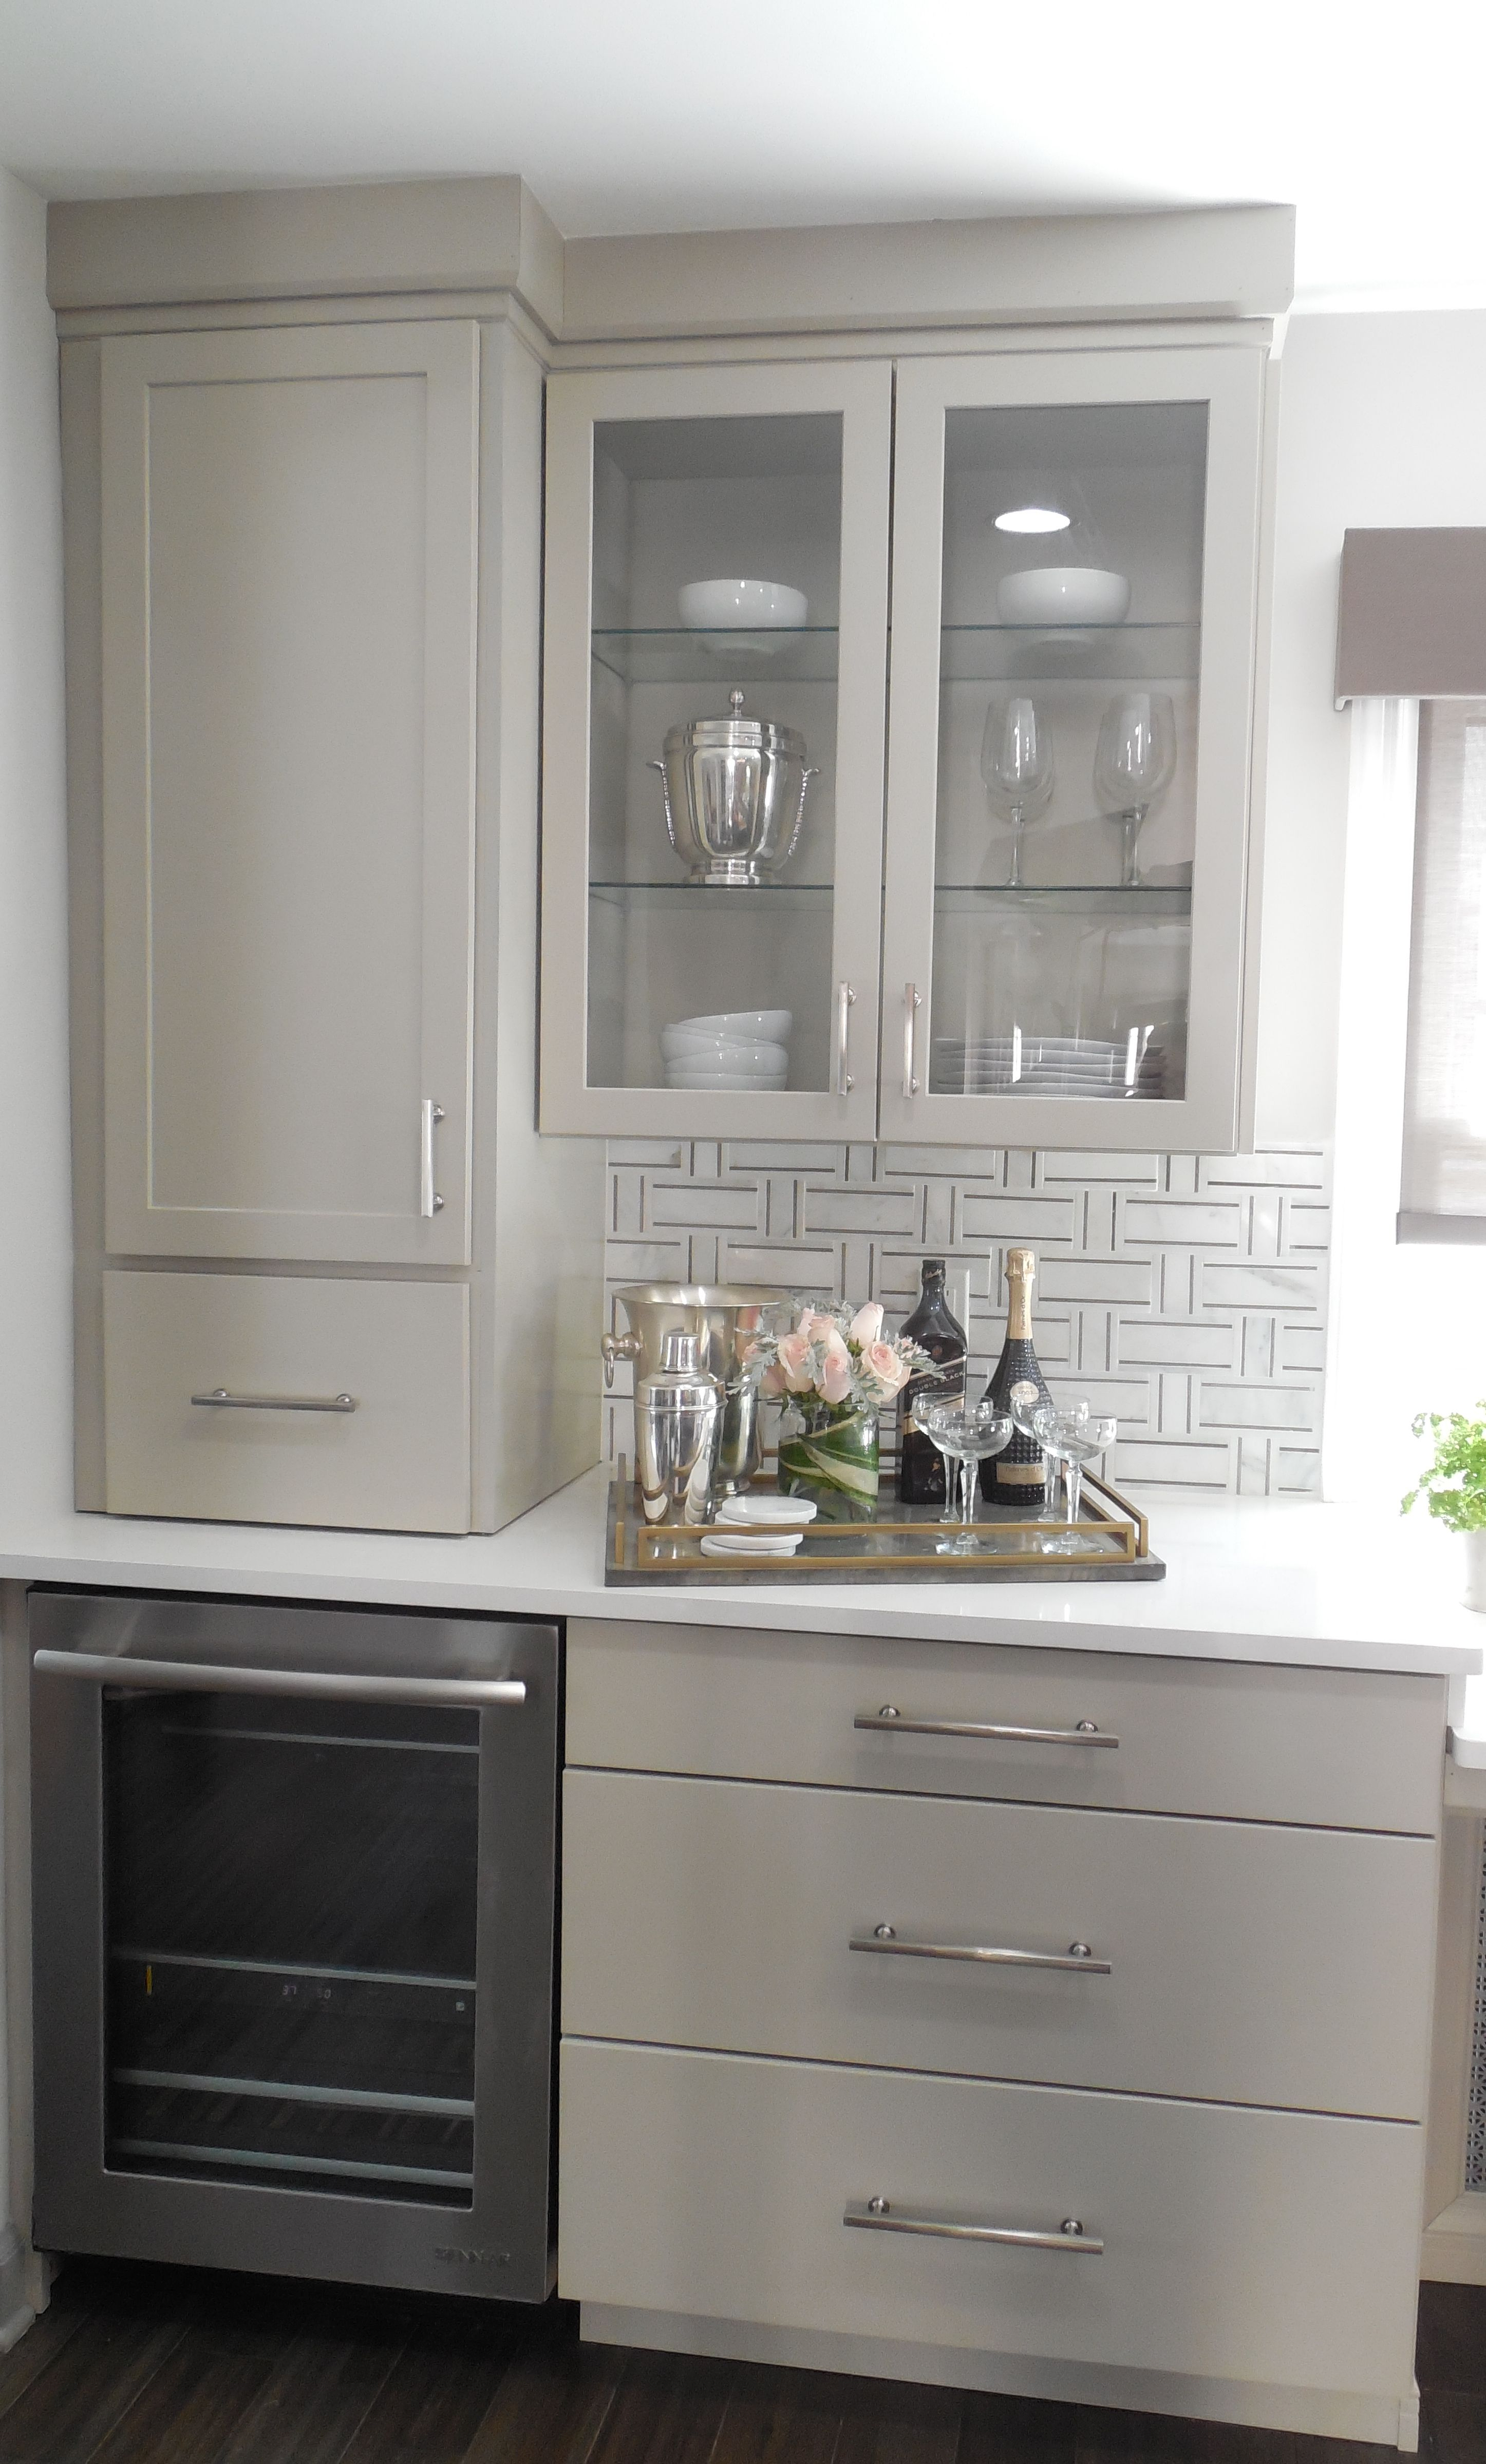 Exclusive Sneak Peek Masterbrand Is Partnering With Hgtv S Buyingsellingpb To Make K Clean Kitchen Cabinets Beautiful Kitchen Cabinets Cheap Kitchen Cabinets